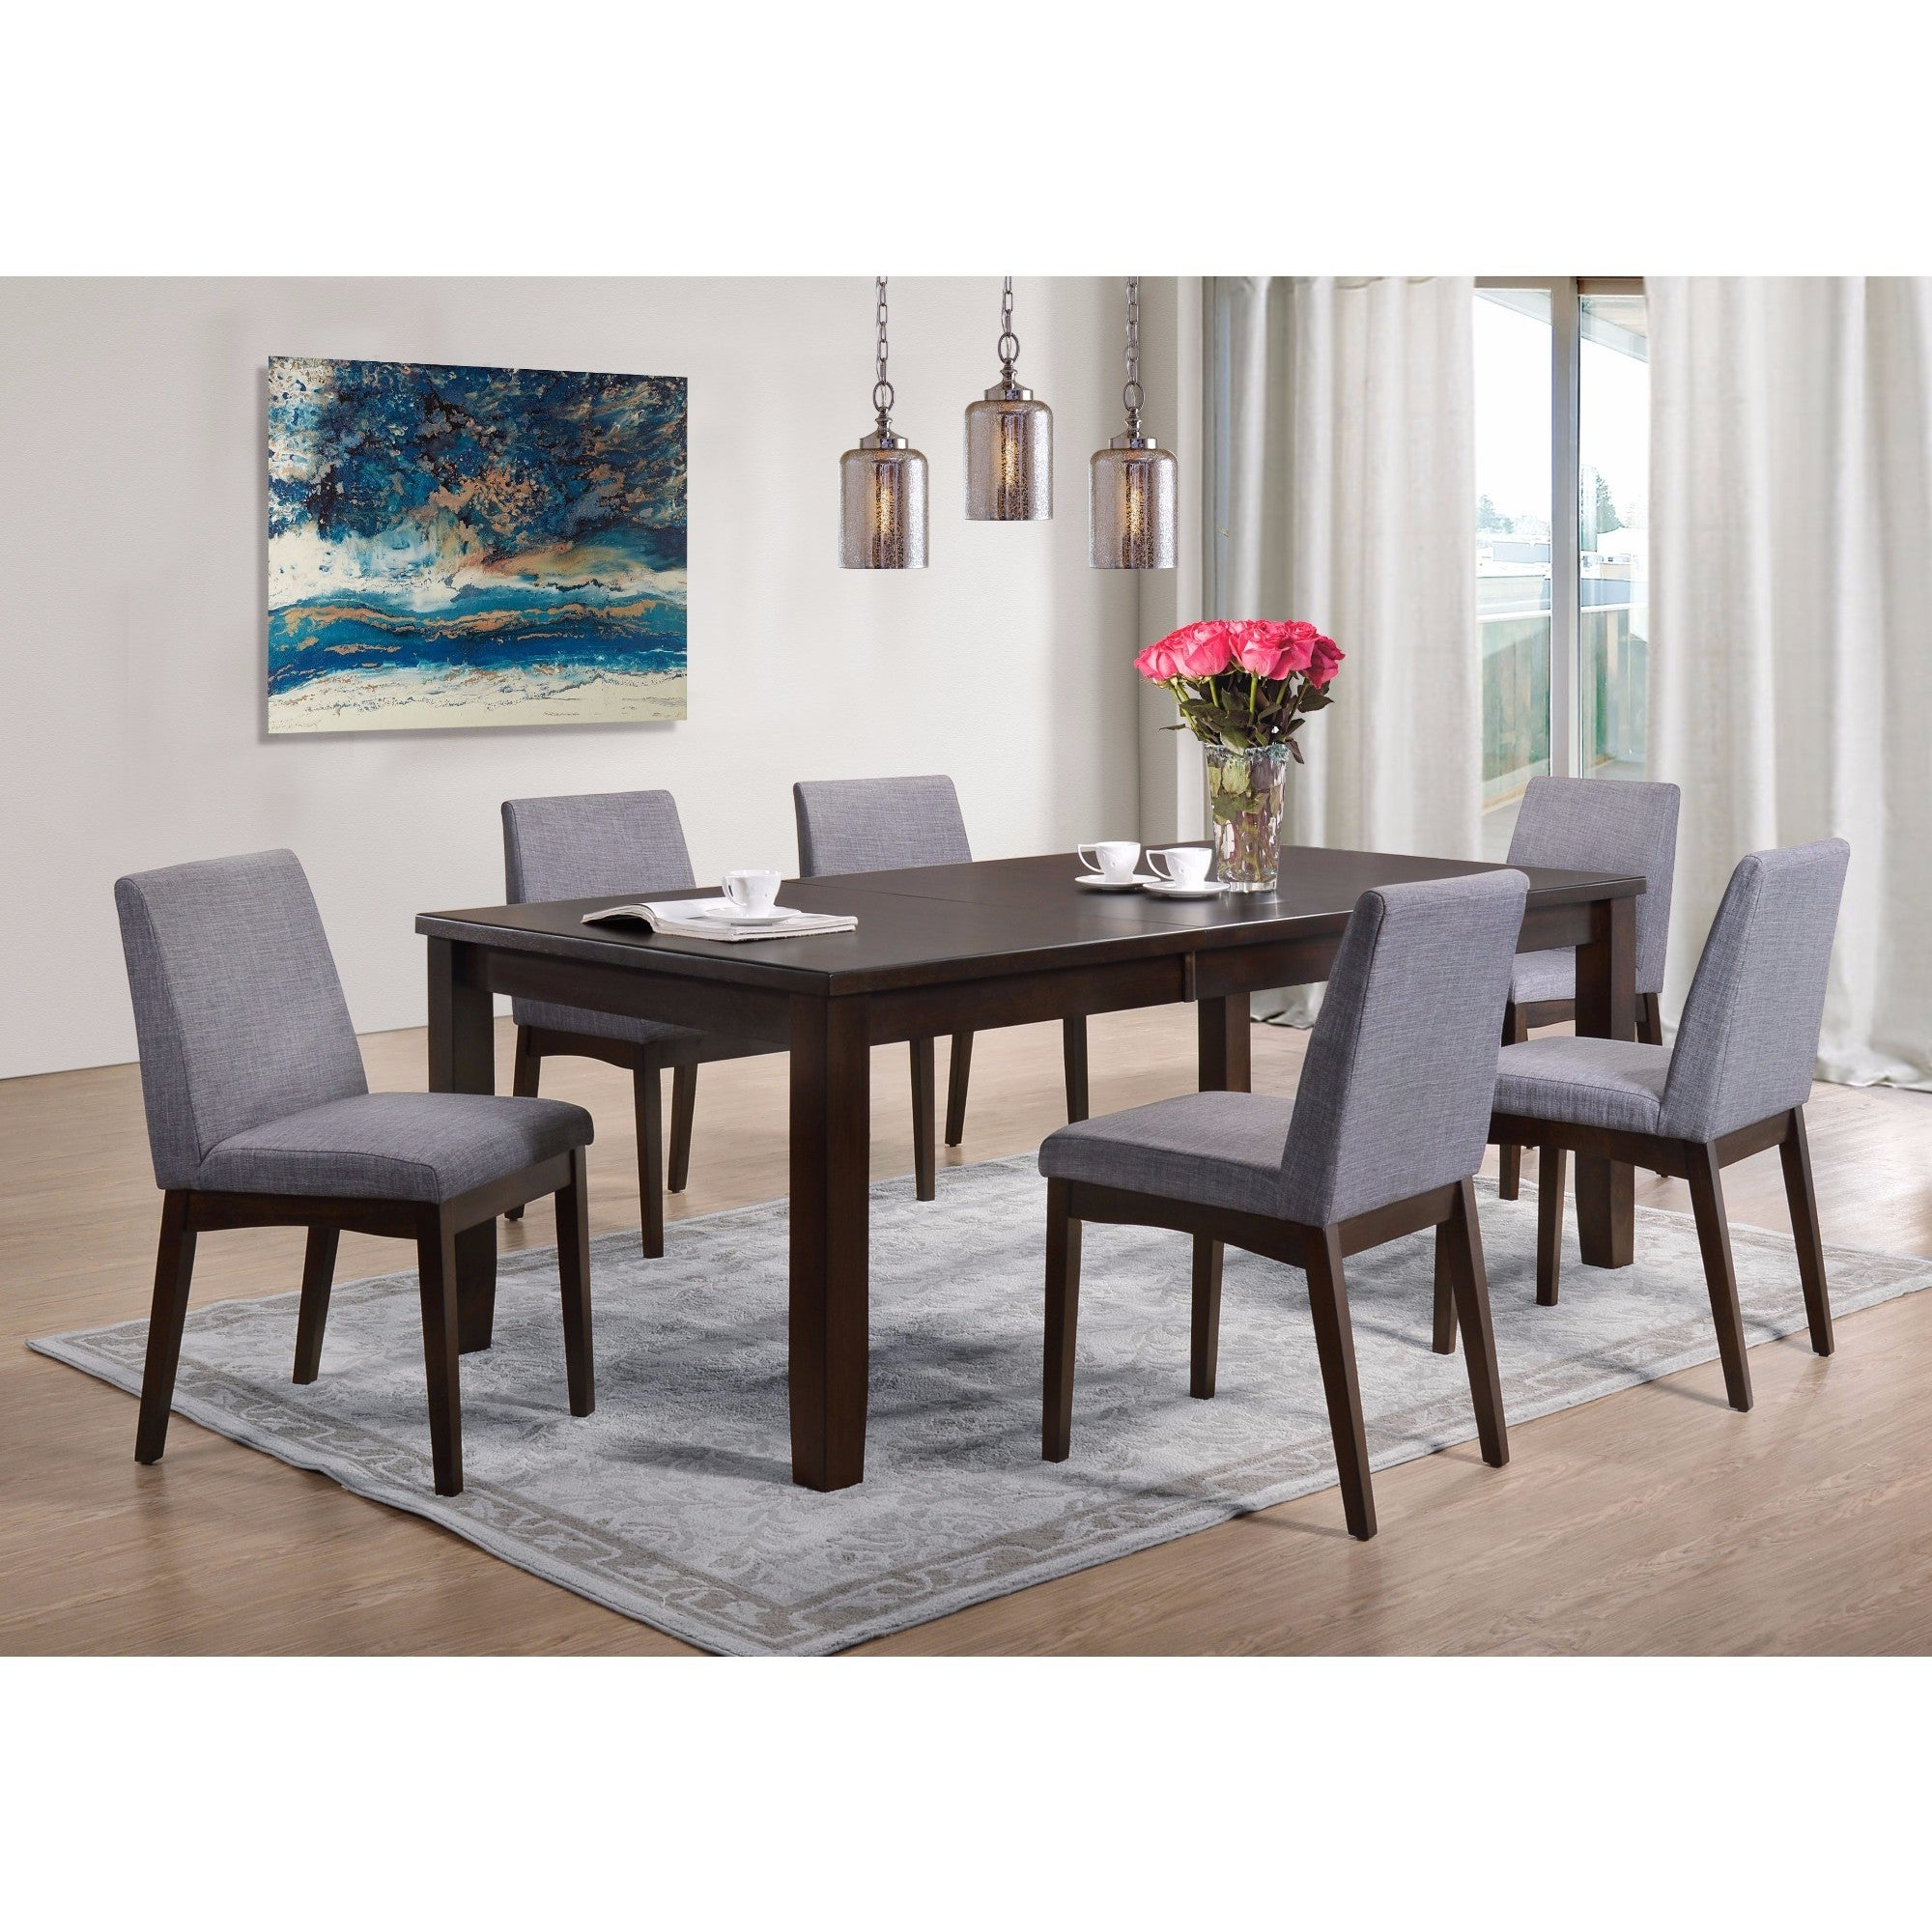 Picket House Furnishings Pyke 7Pc Dining Set Table & 6 Dining Chairs Regarding Preferred Ingred Extending Dining Tables (View 18 of 25)